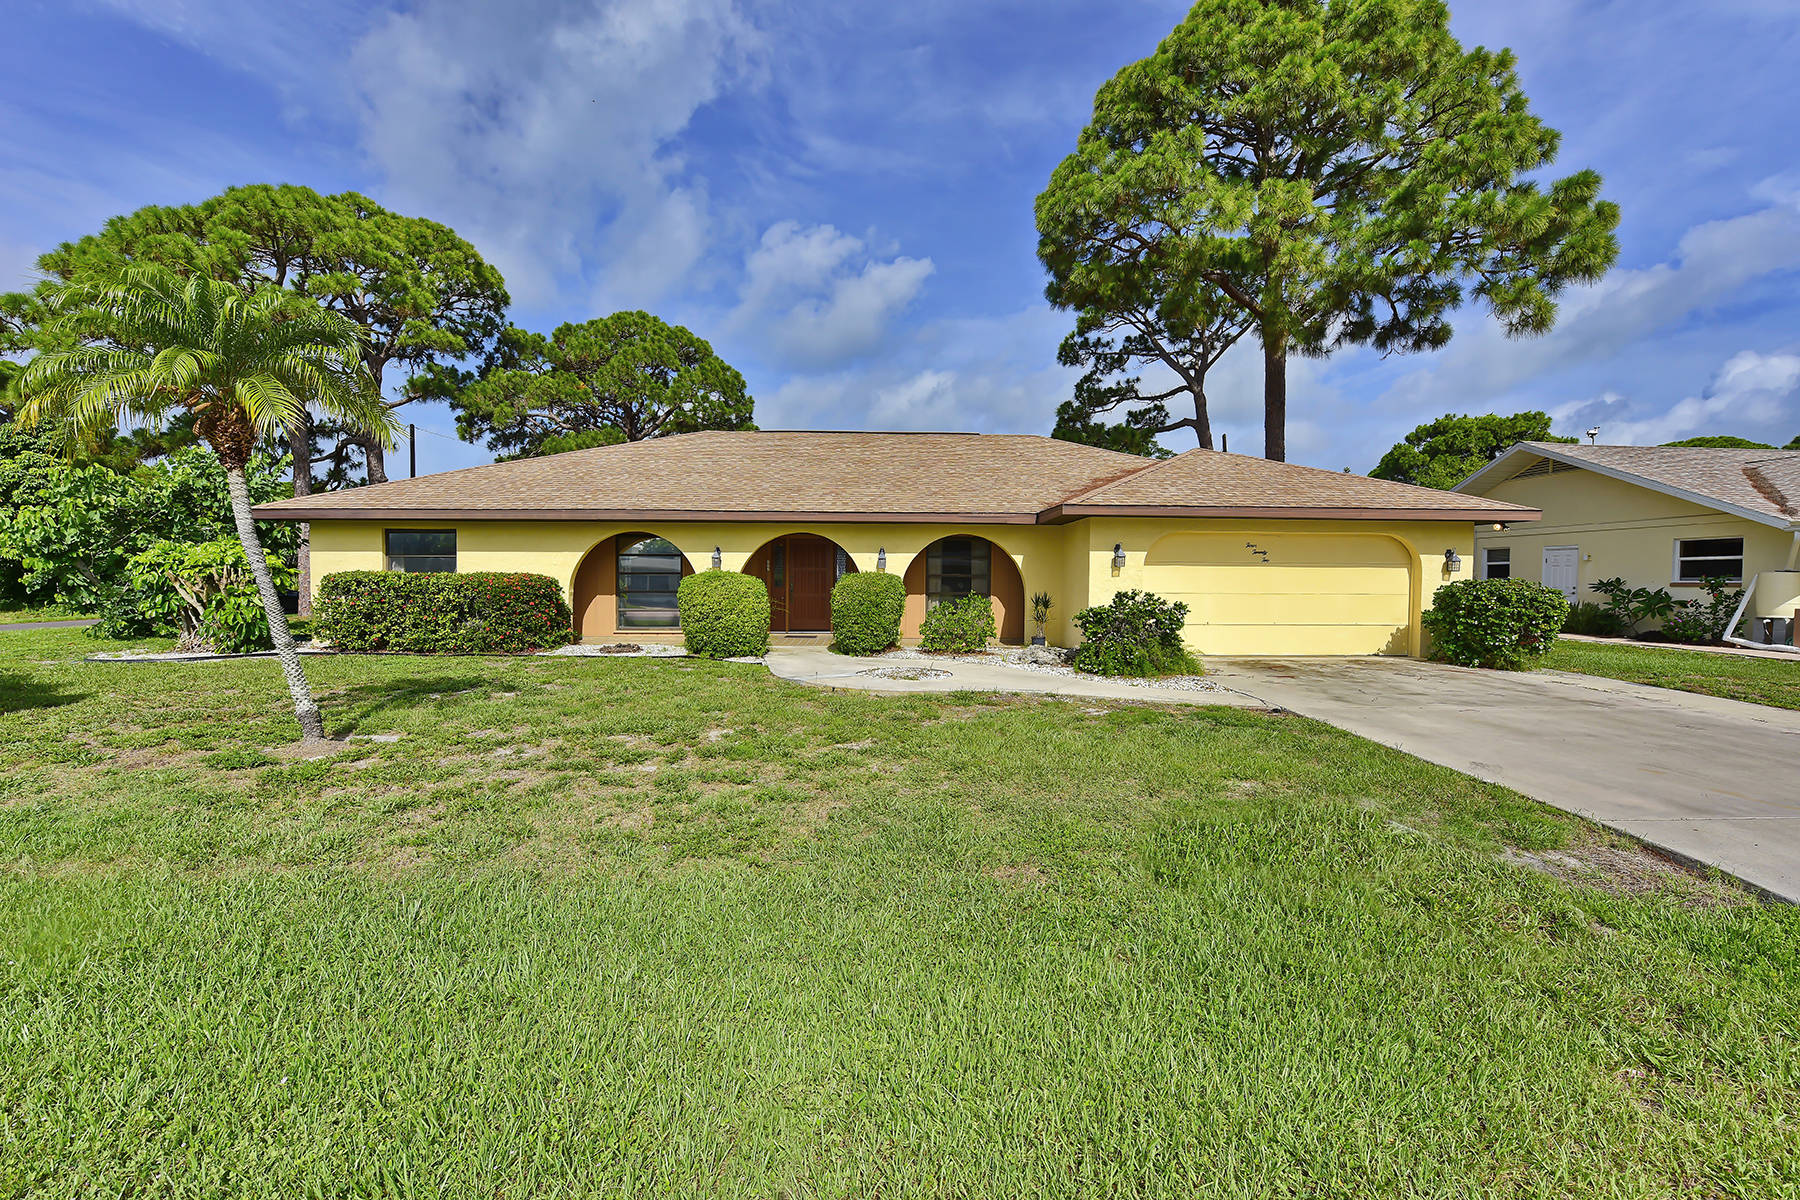 Single Family Home for Sale at BEACH PARK - ISLAND OF VENICE 422 Beach Park Blvd Venice, Florida 34285 United States